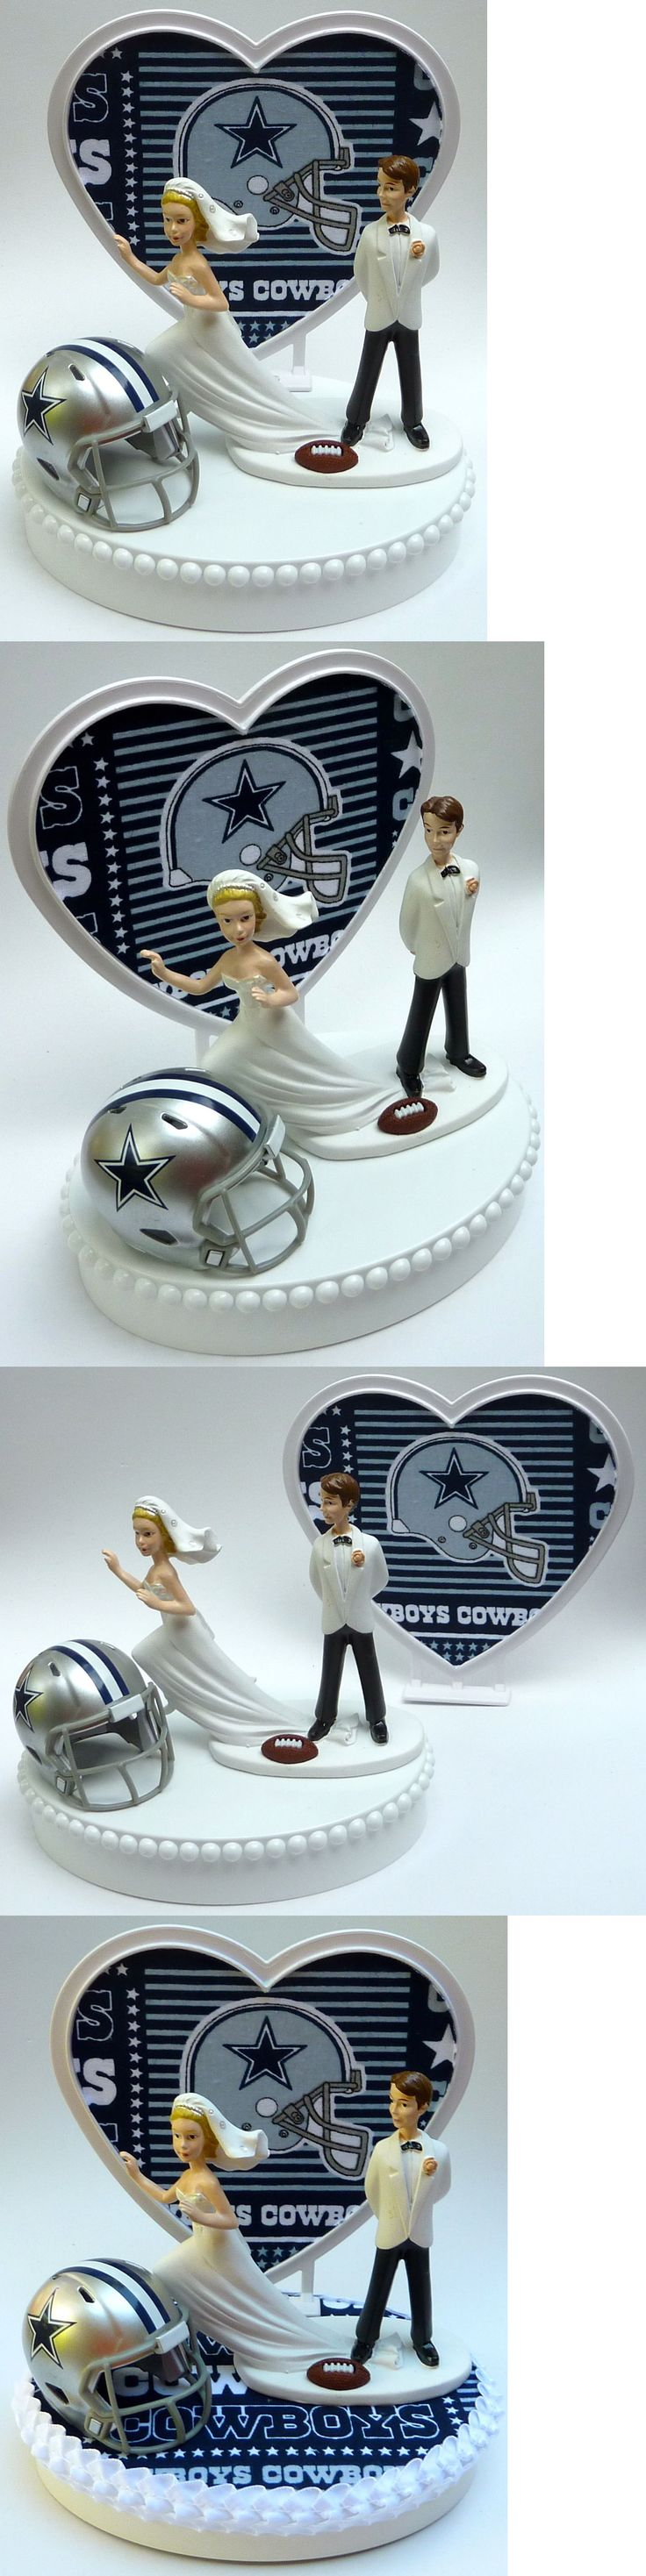 Wedding Cakes Toppers: Wedding Cake Topper Football Dallas Cowboys Themed Runaway Bride Sports W Garter -> BUY IT NOW ONLY: $59.99 on eBay!